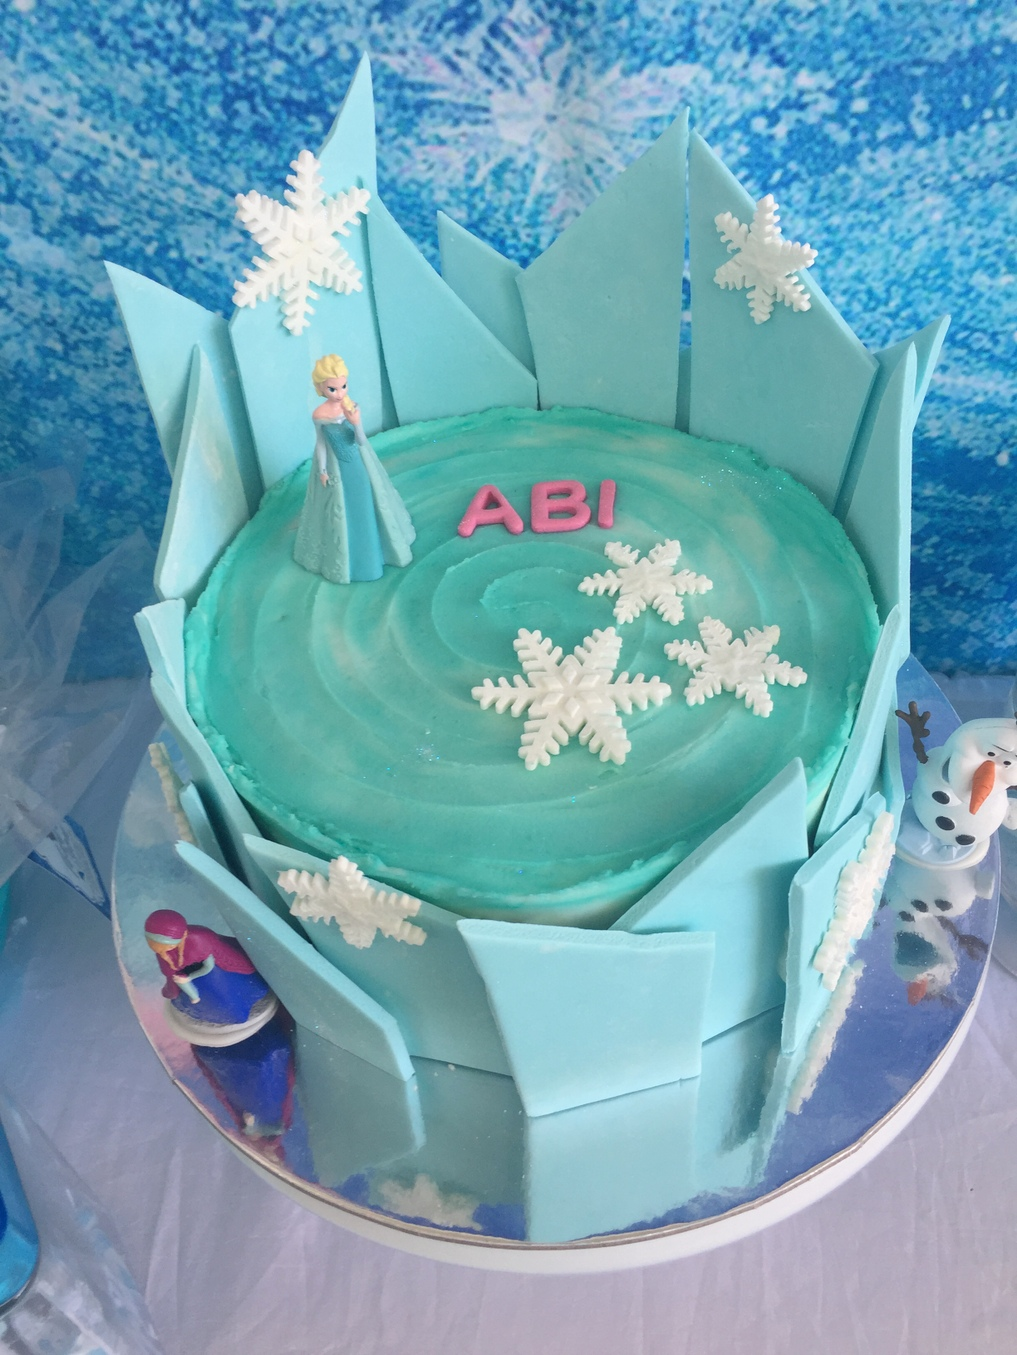 Frozen party ideas - cake idea